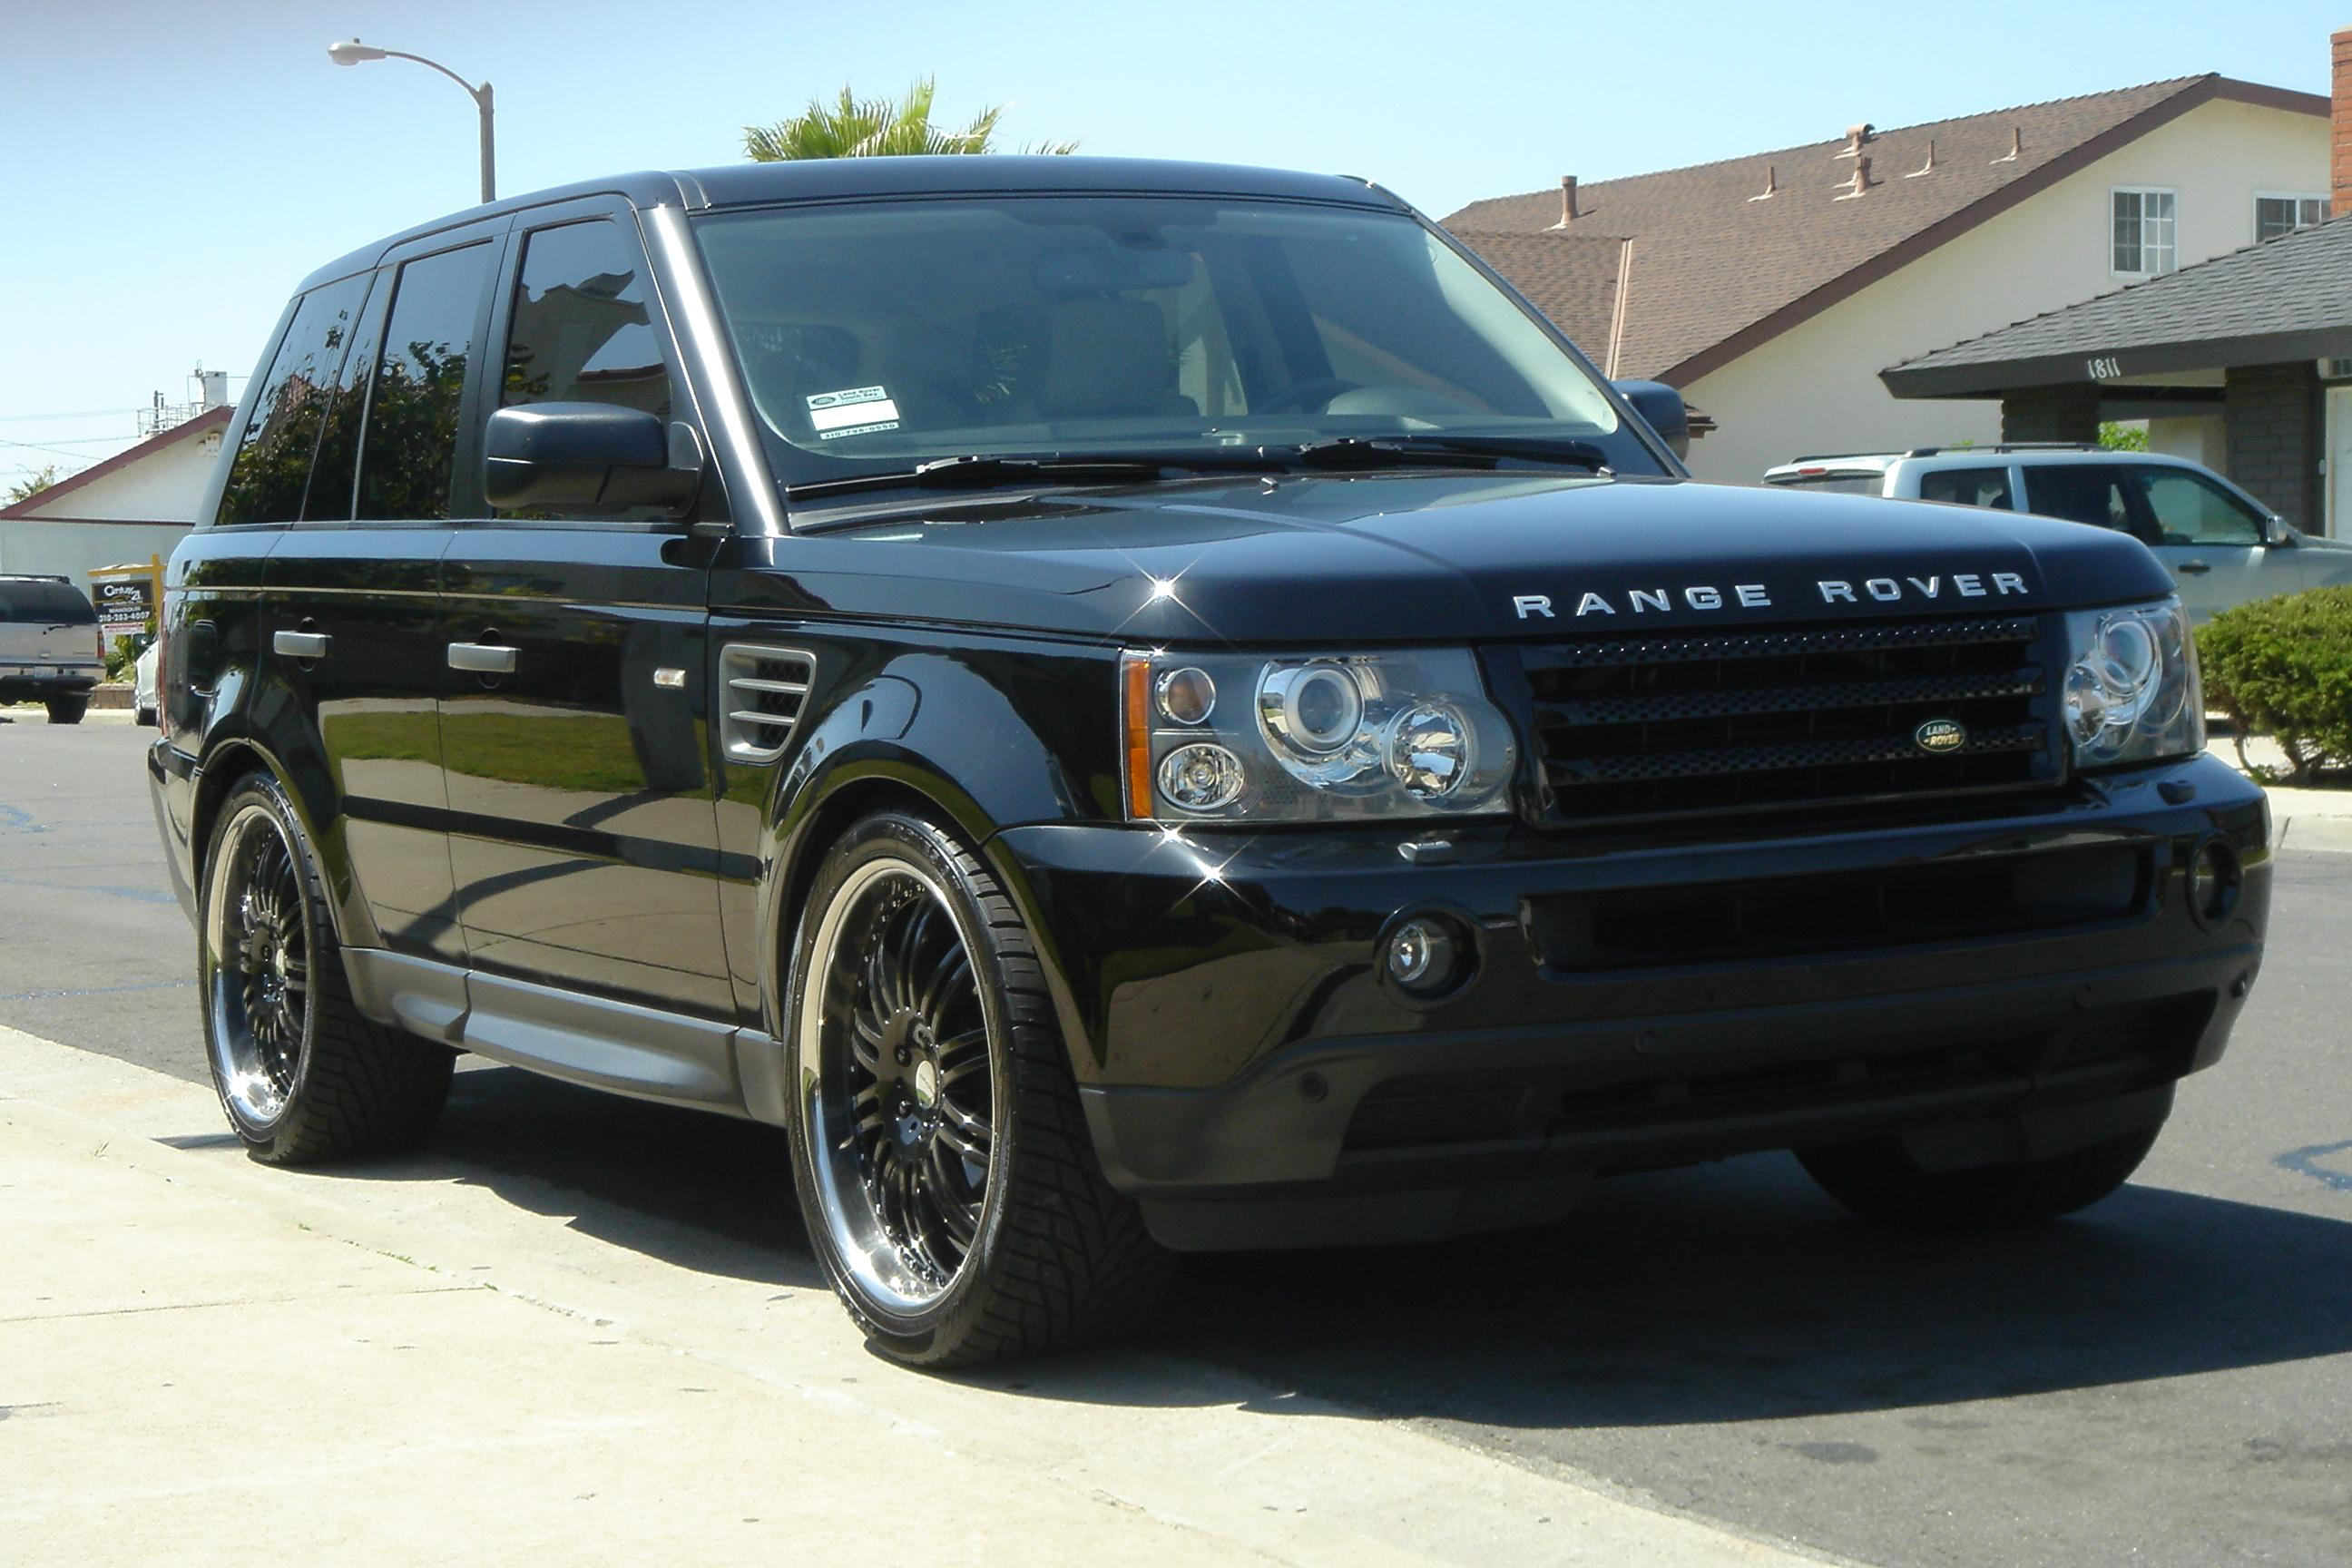 k5blazin 2008 land rover range rover sporthse sport utility 4d specs photos modification info. Black Bedroom Furniture Sets. Home Design Ideas